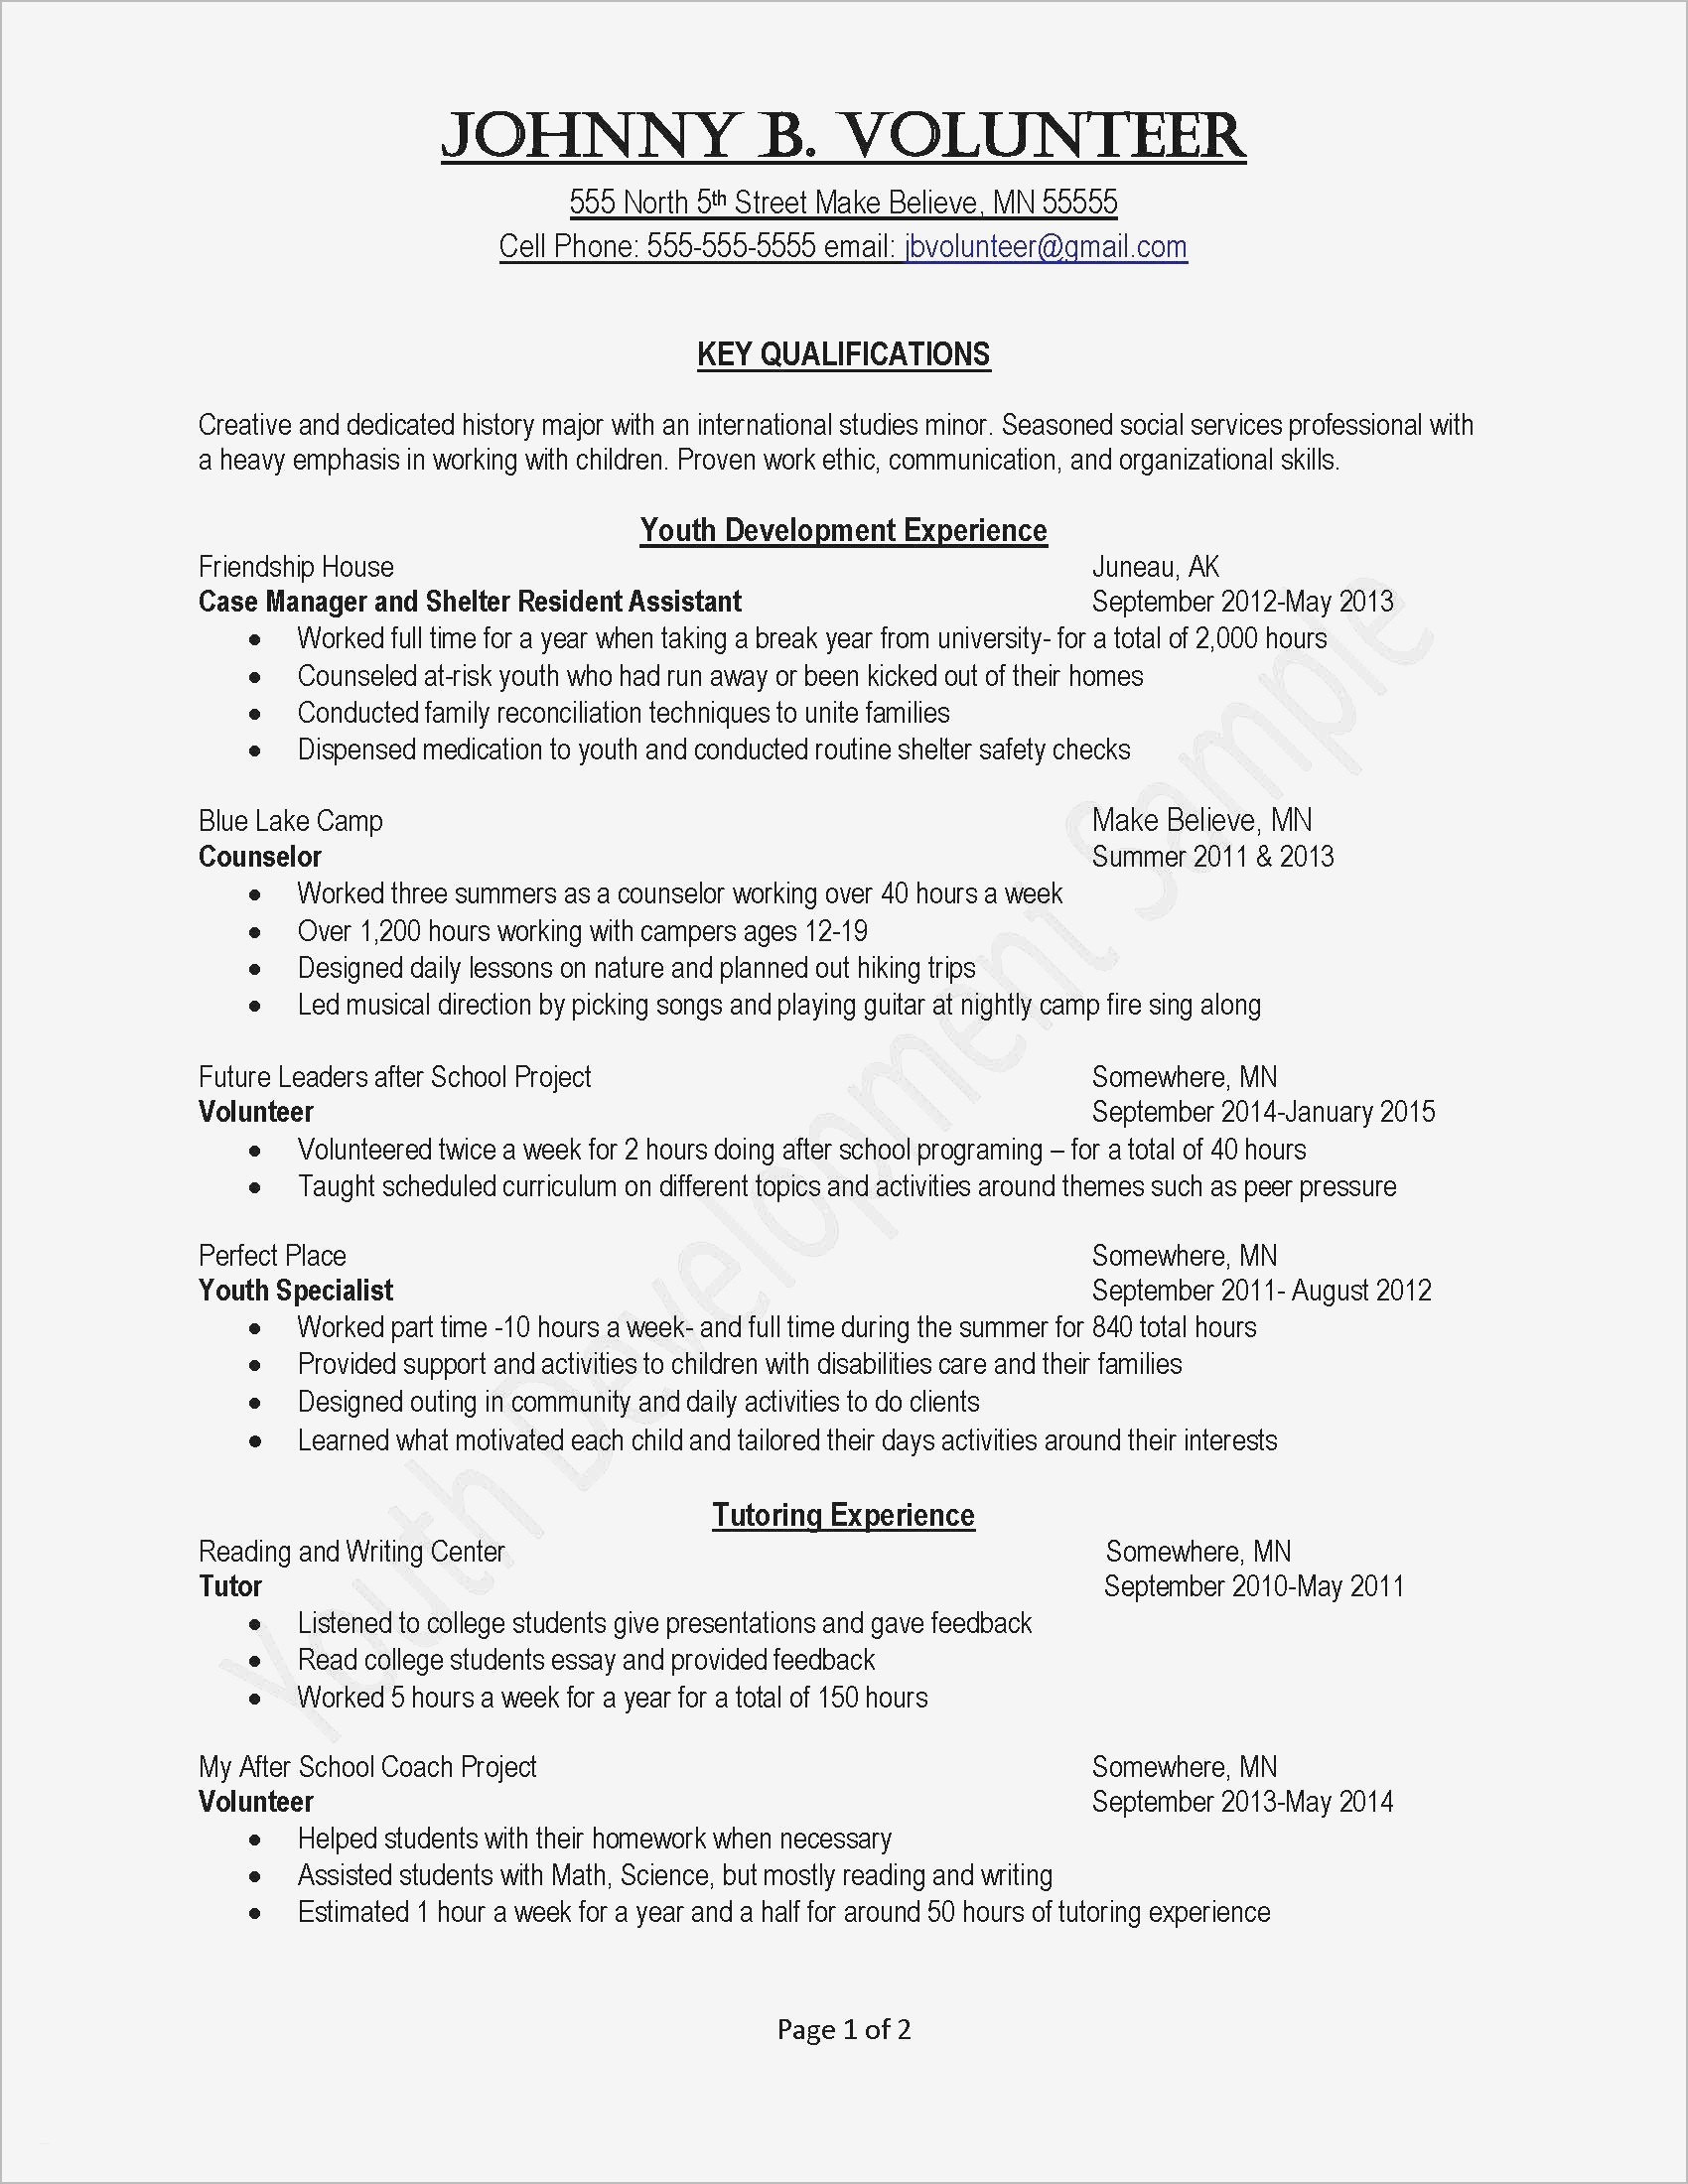 Job Resume Cover Letter Template - Free Cover Letter and Resume Templates Best Job Fer Letter